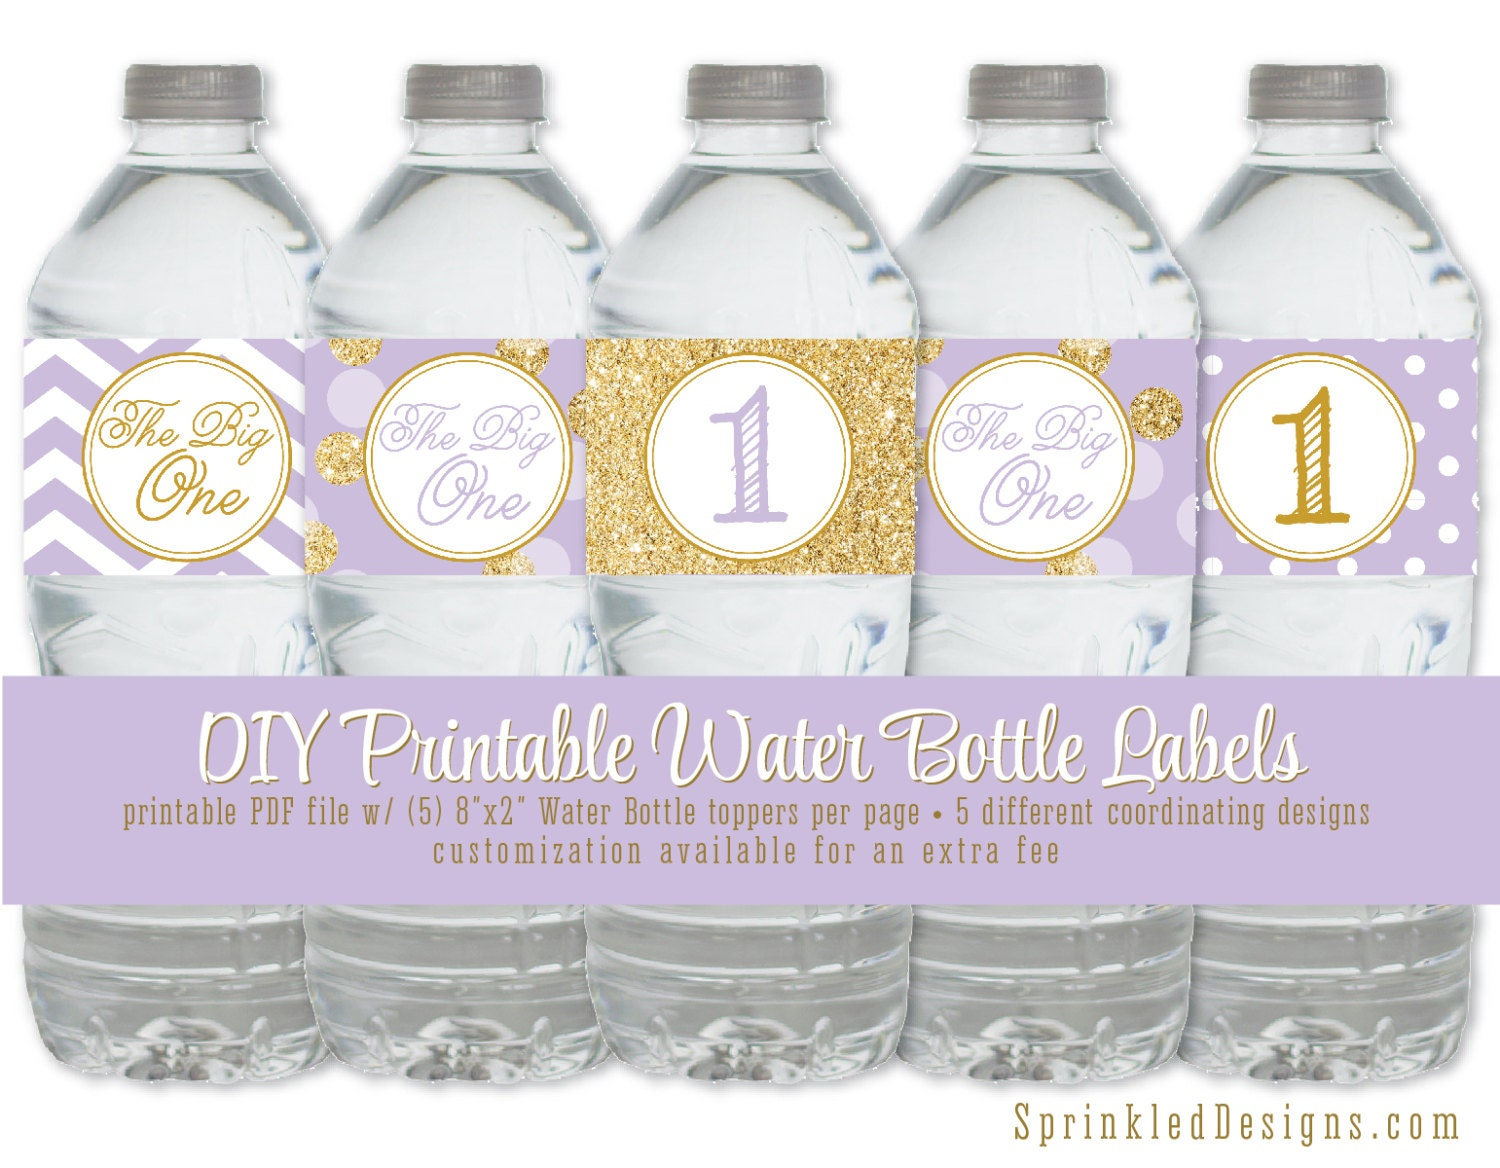 Agile image with regard to water bottle labels printable